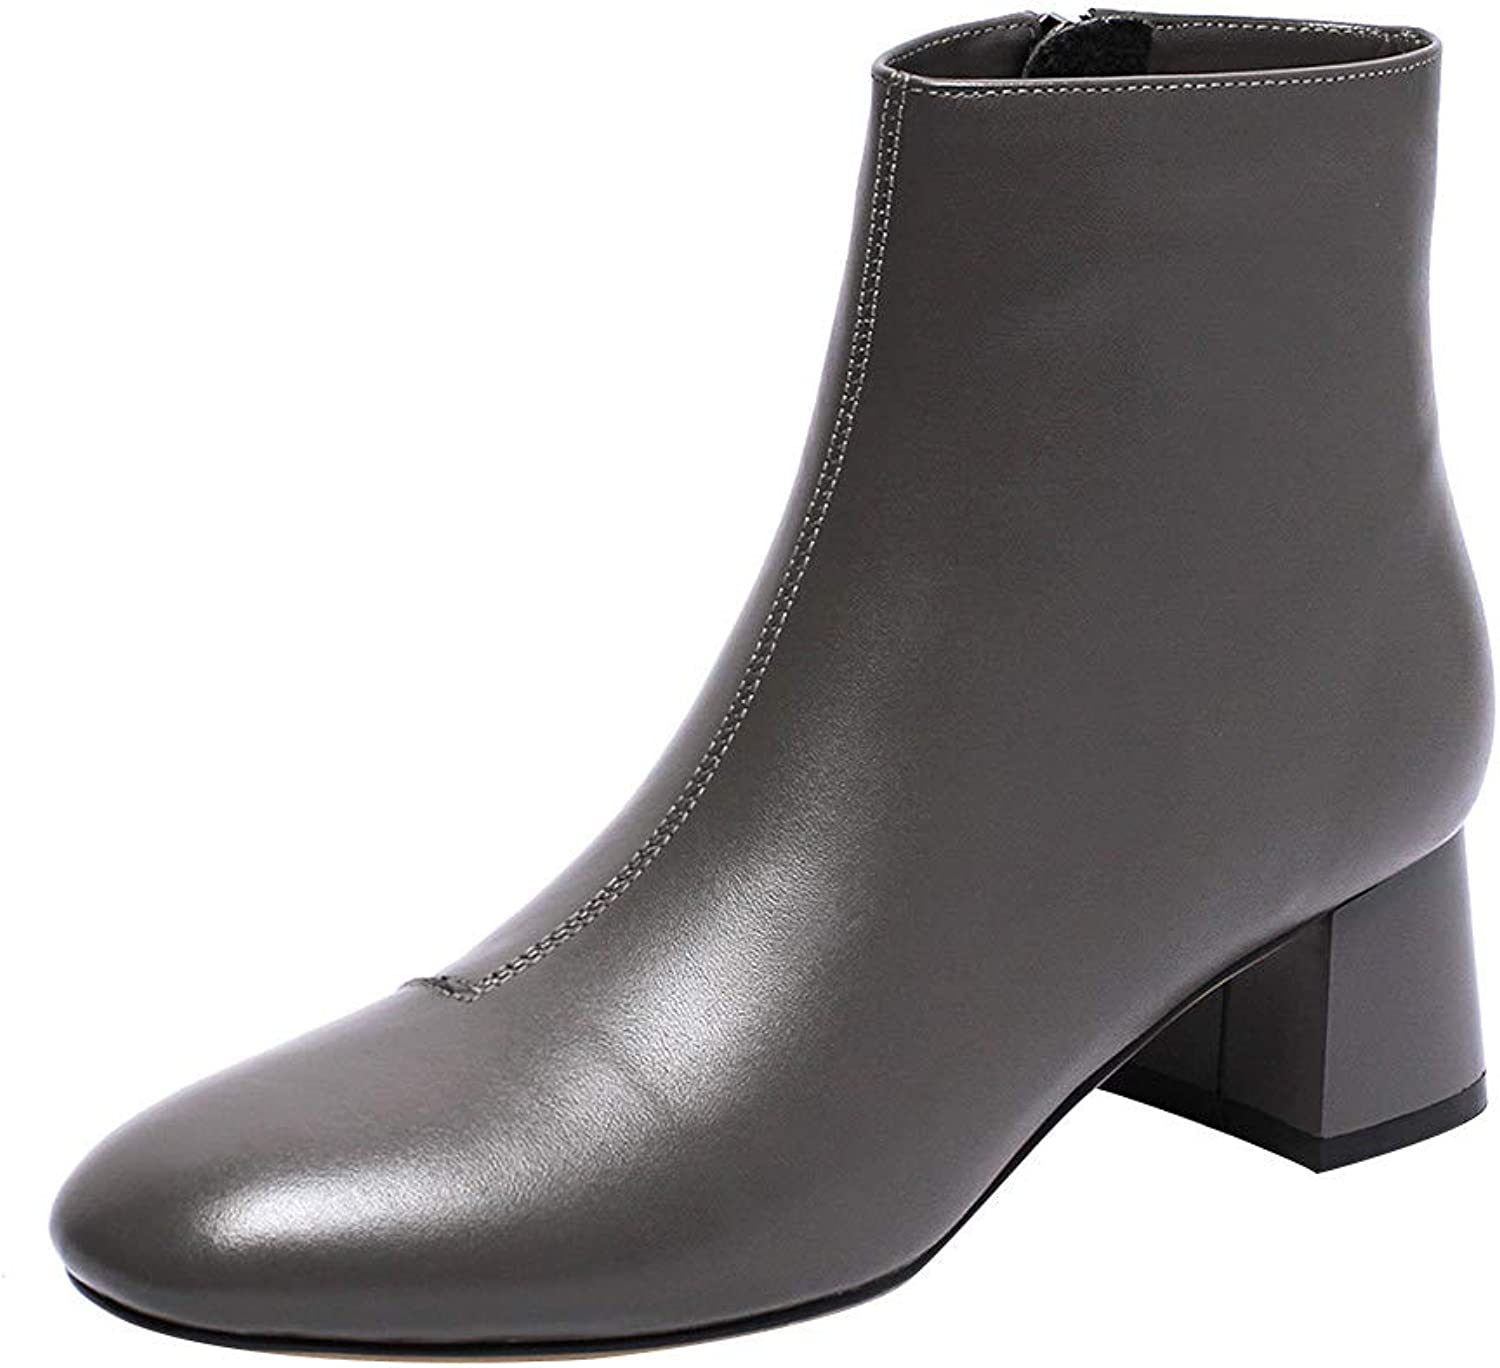 MAYPIE Womens Toamong Leather Zipper Ankle Boots